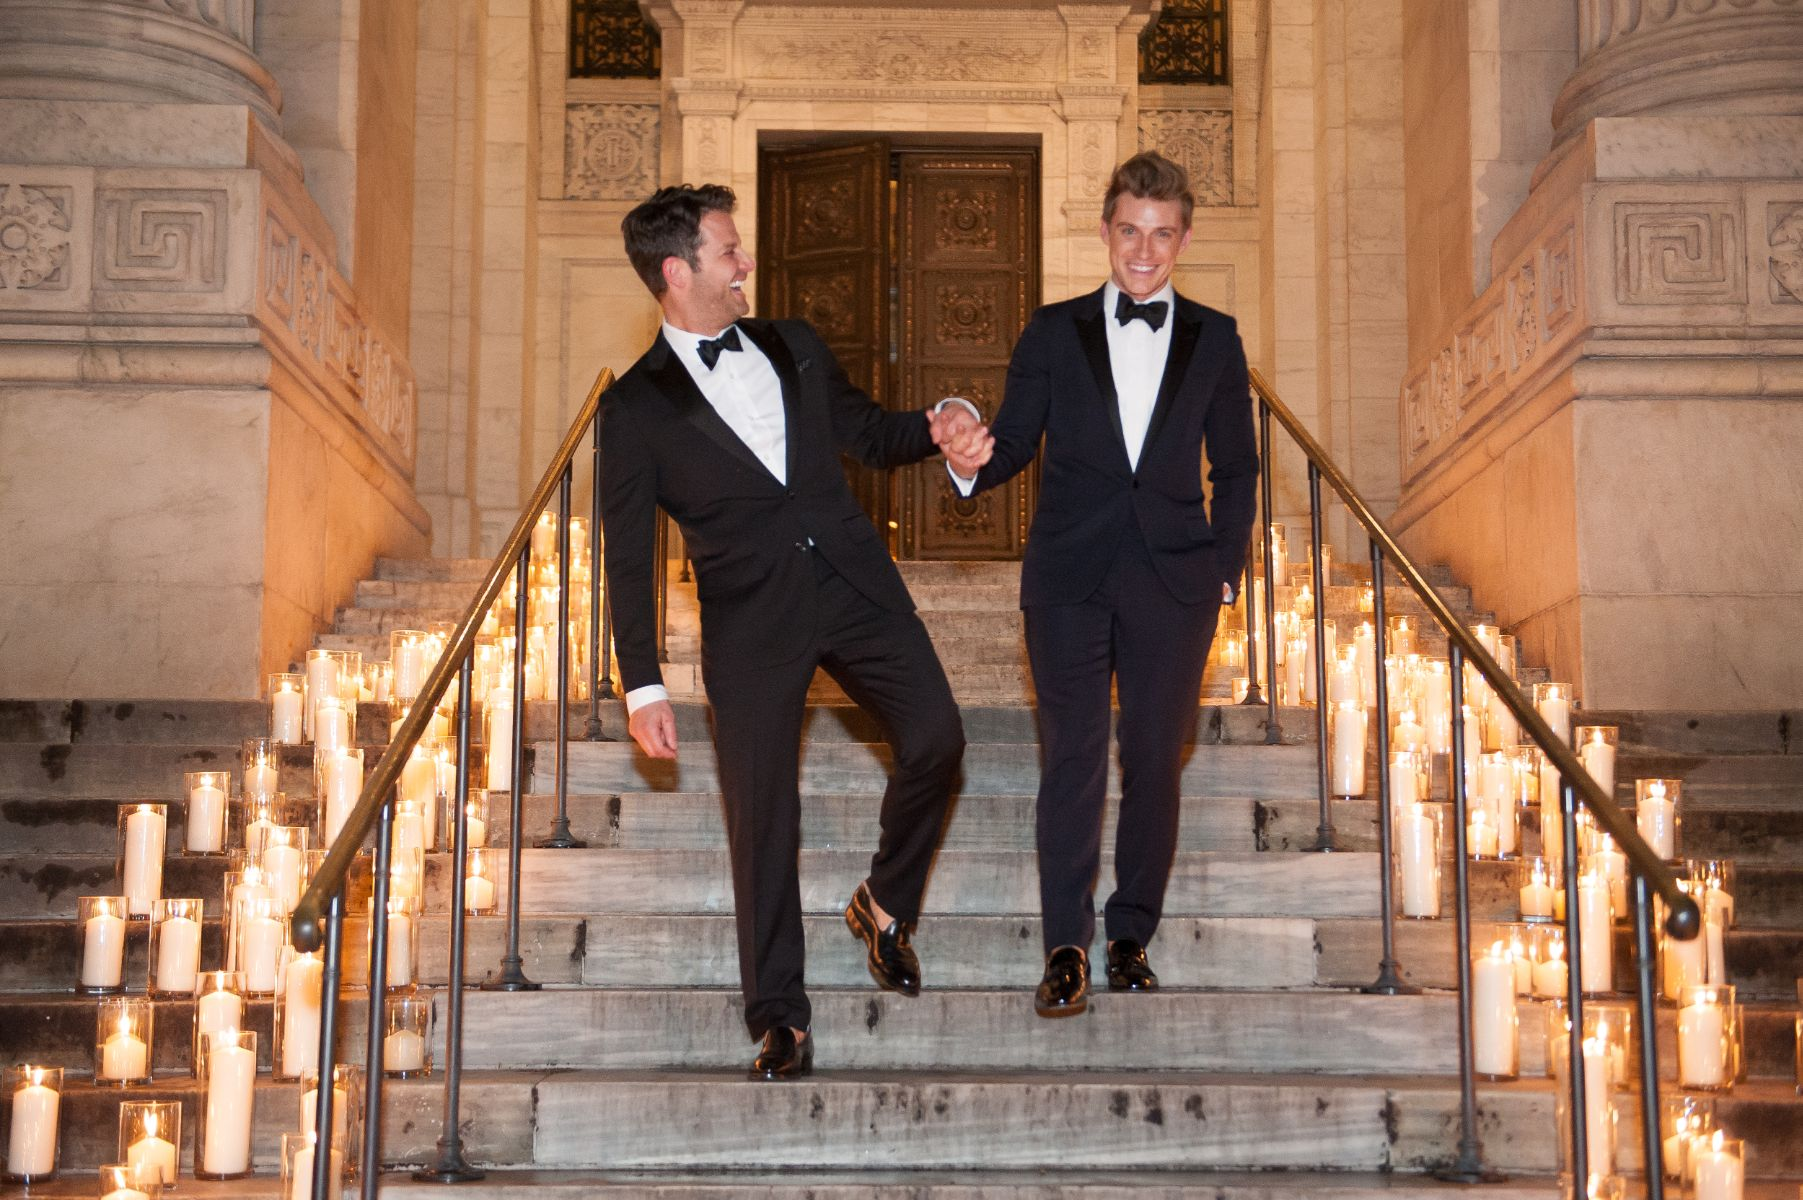 Two grooms hold hands at their wedding.